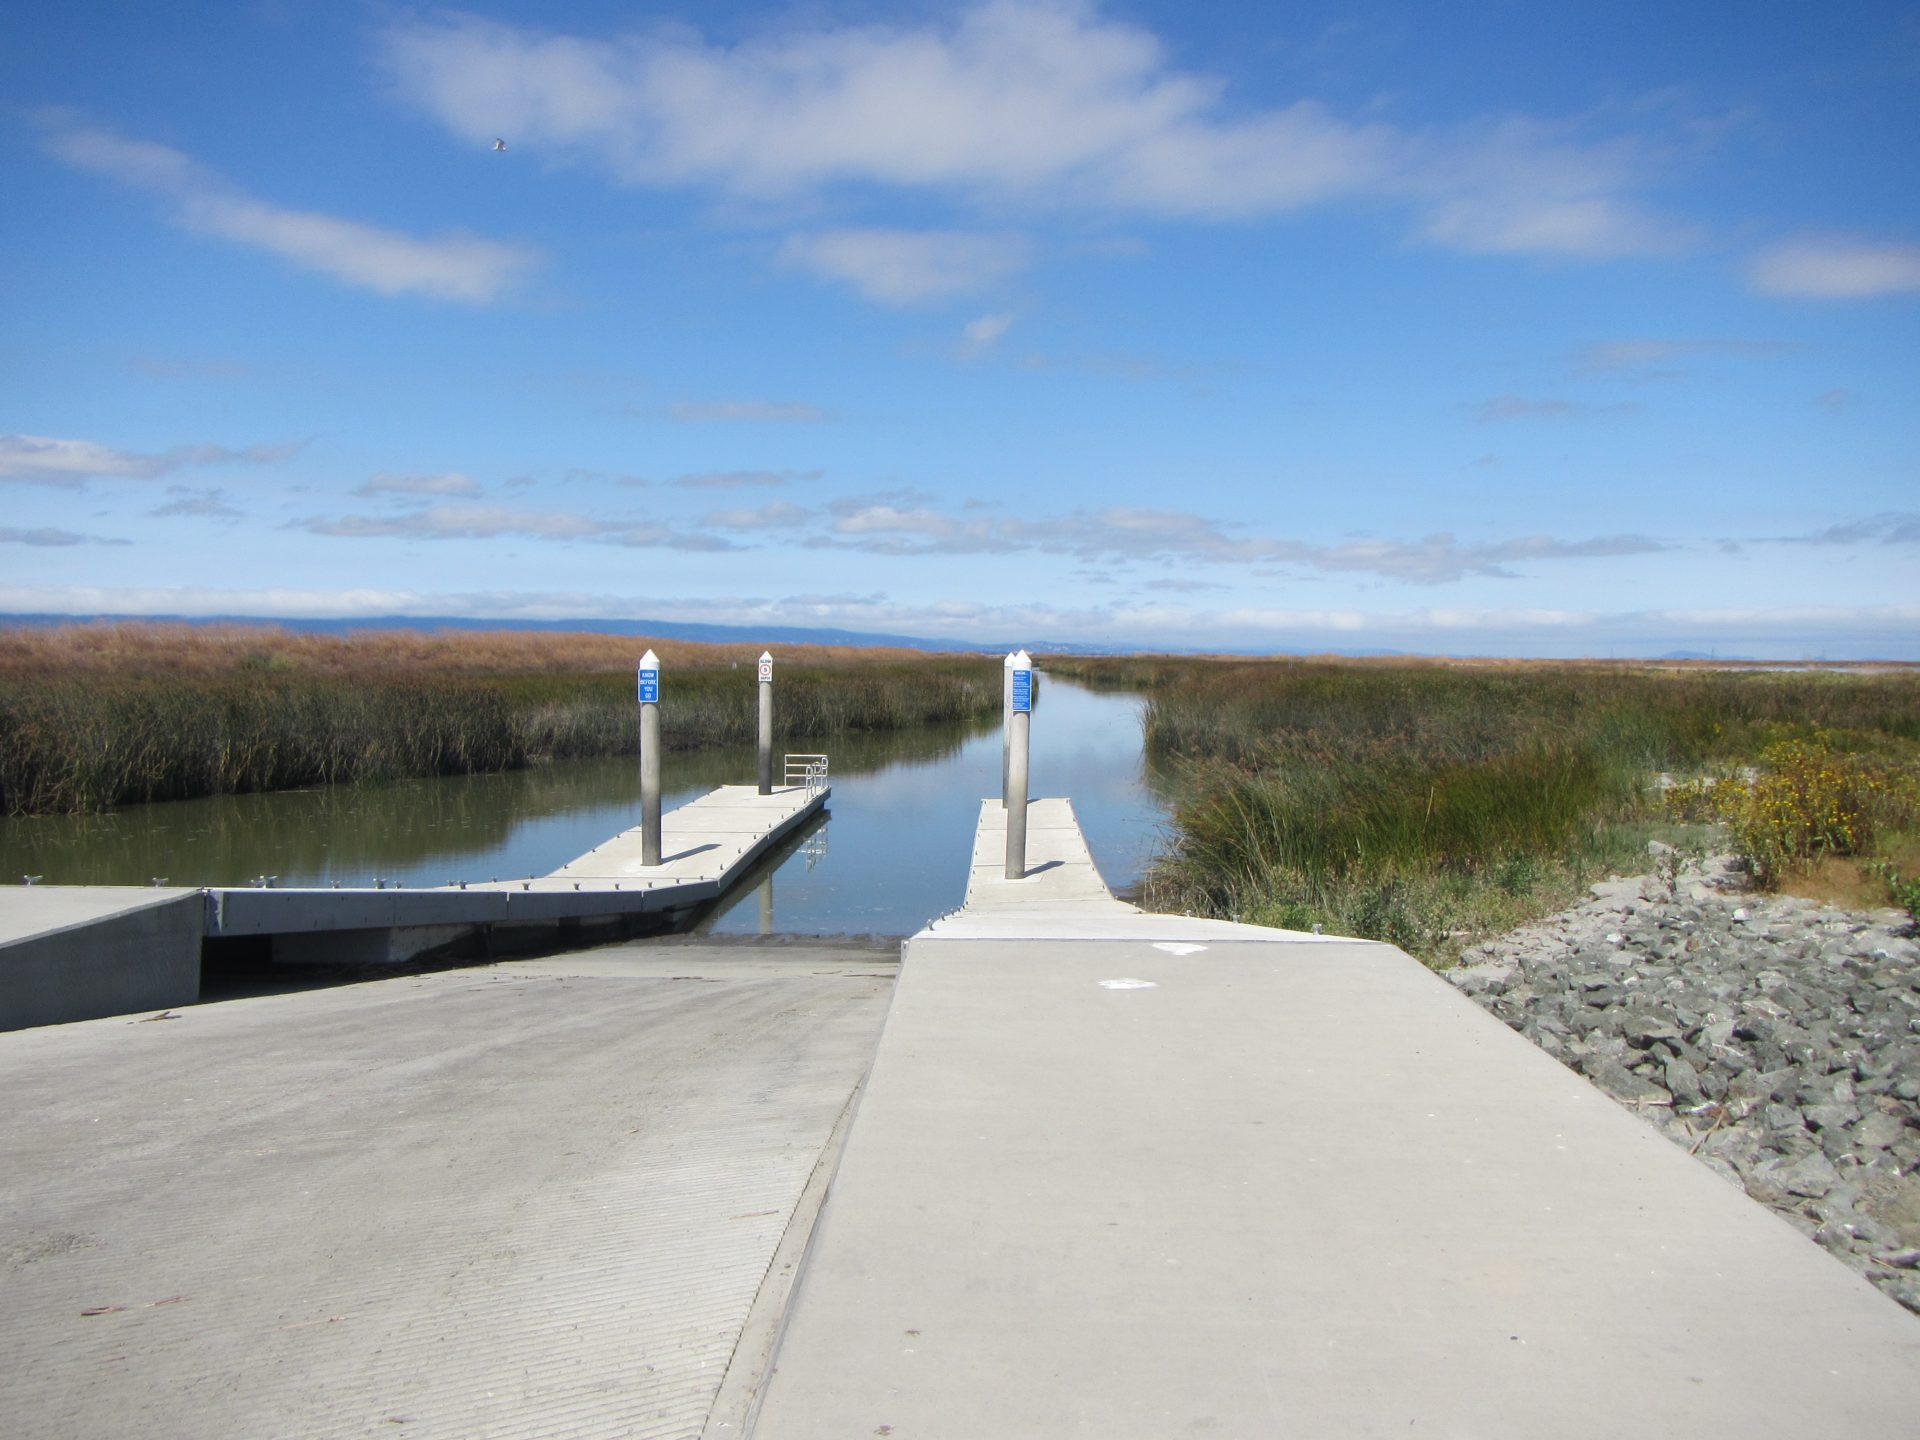 boat ramp descends into channel through marsh